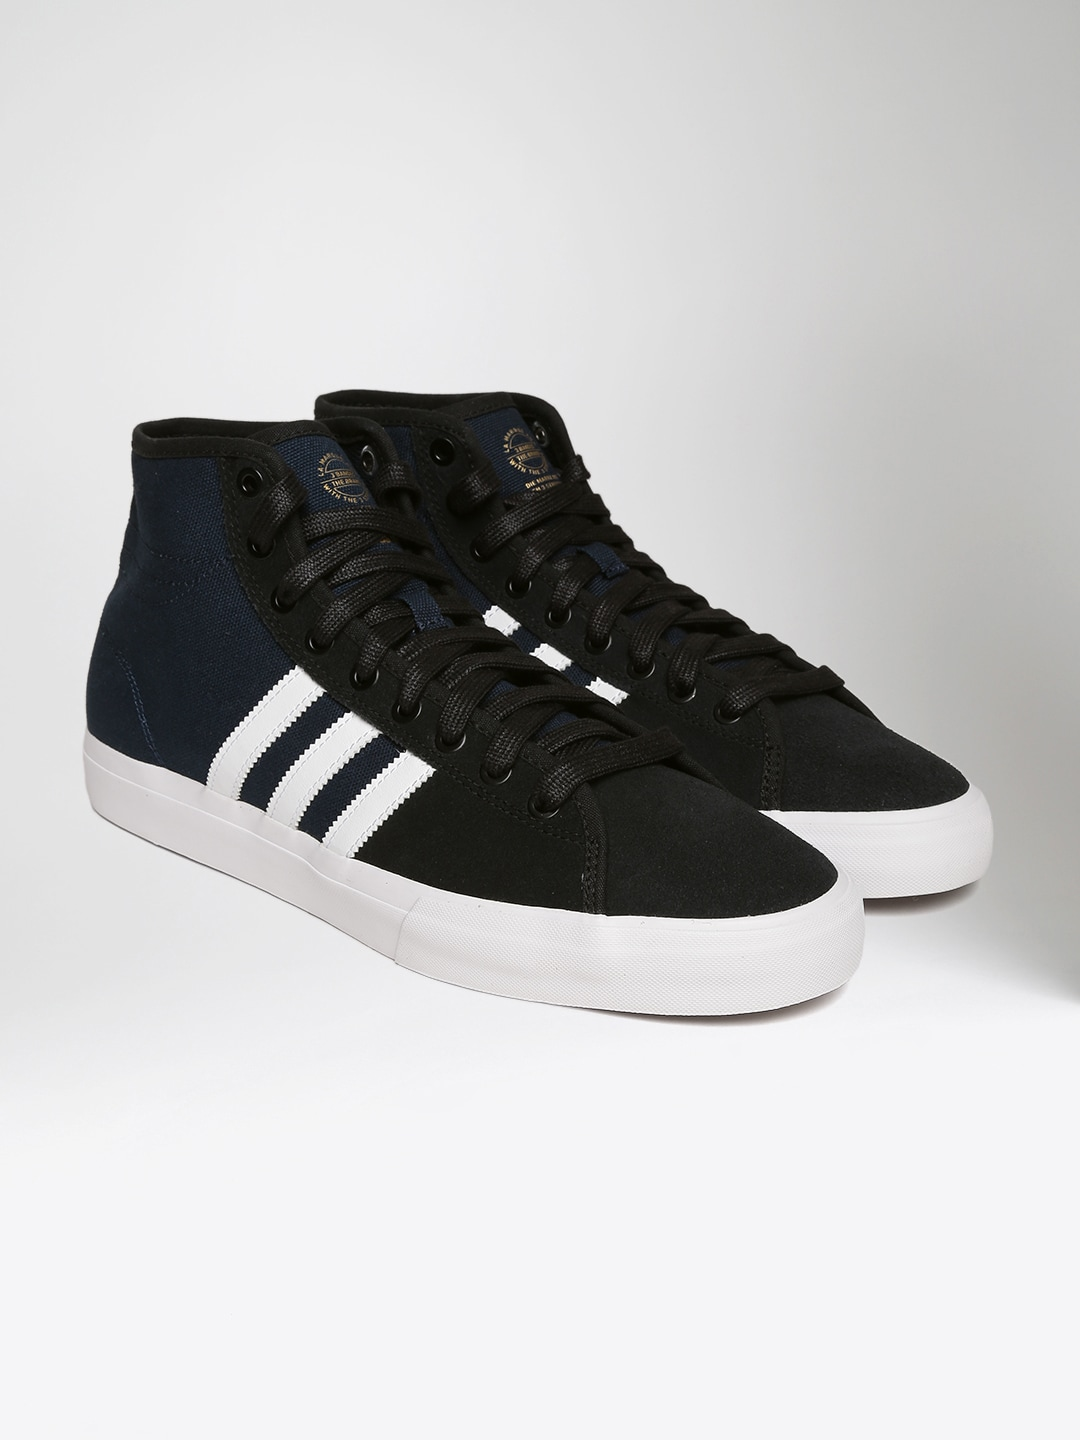 info for a28a7 8ede1 adidas navy blue shoes